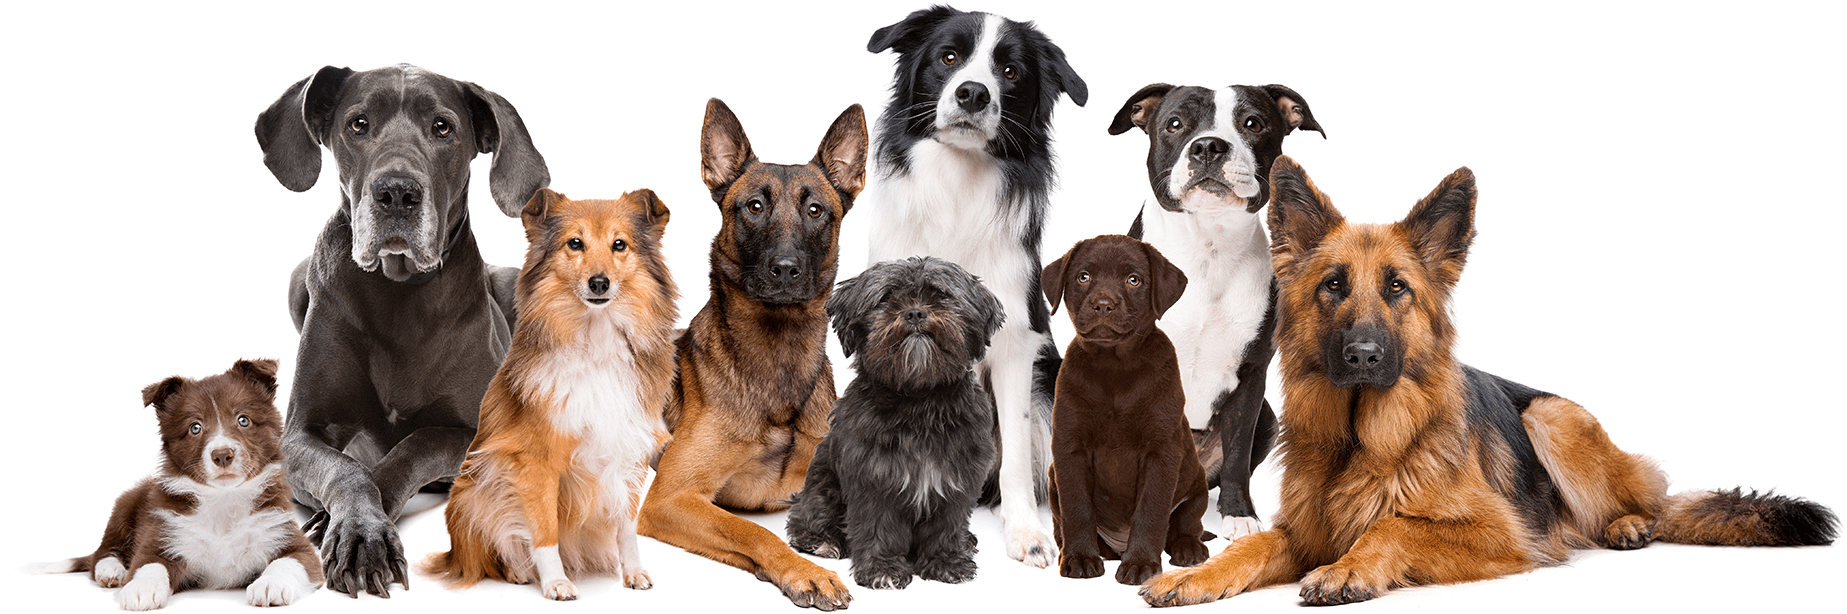 Picture of a pack of dogs of different bread calm and attentive on a white backdrop